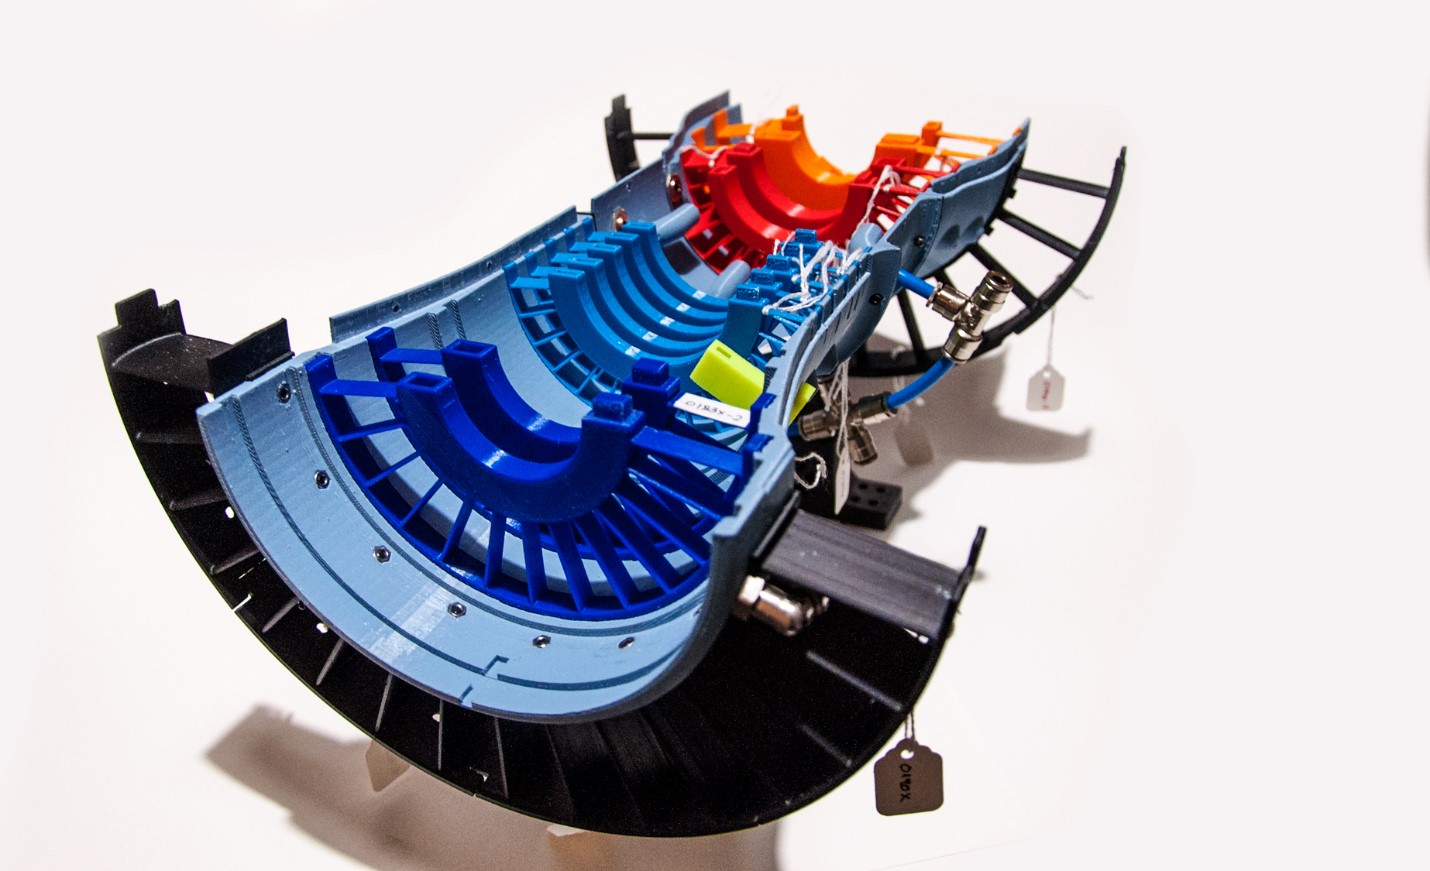 A model of a jet engine for educational purposes.